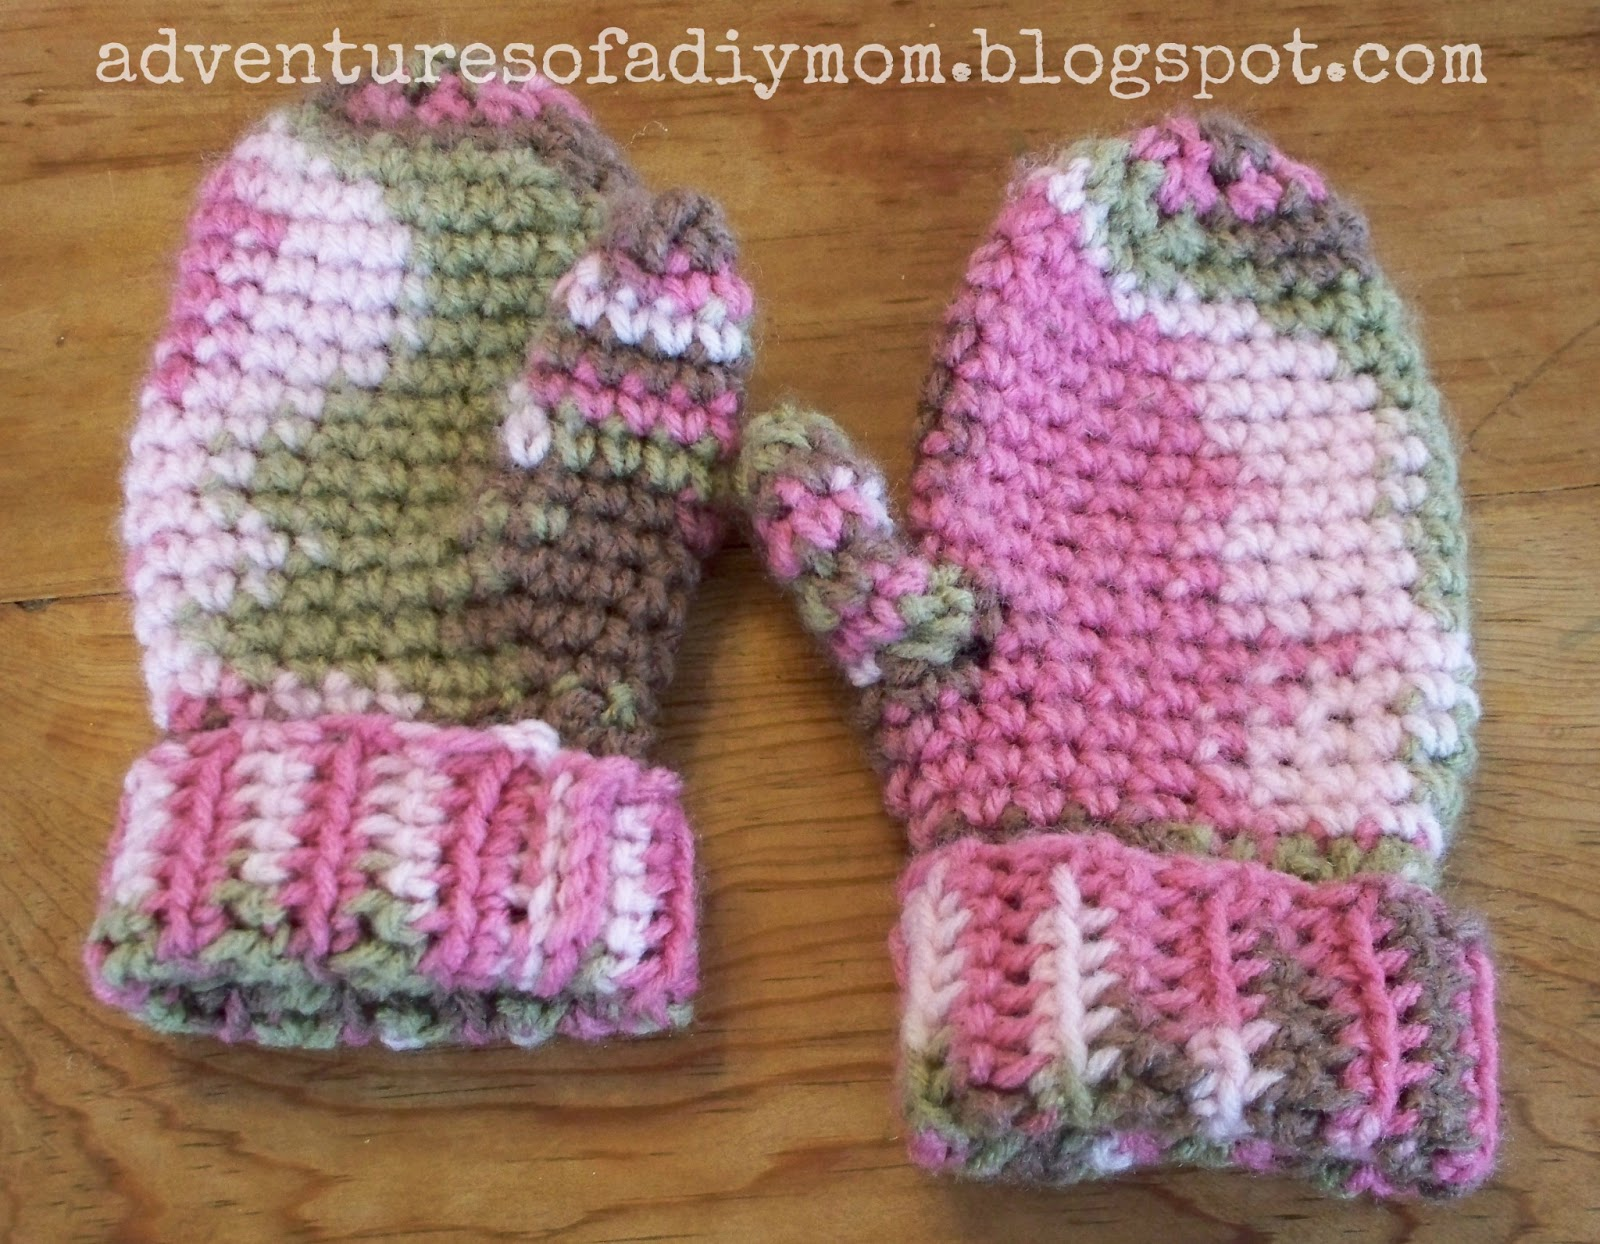 Crocheted Mittens - Adventures of a DIY Mom